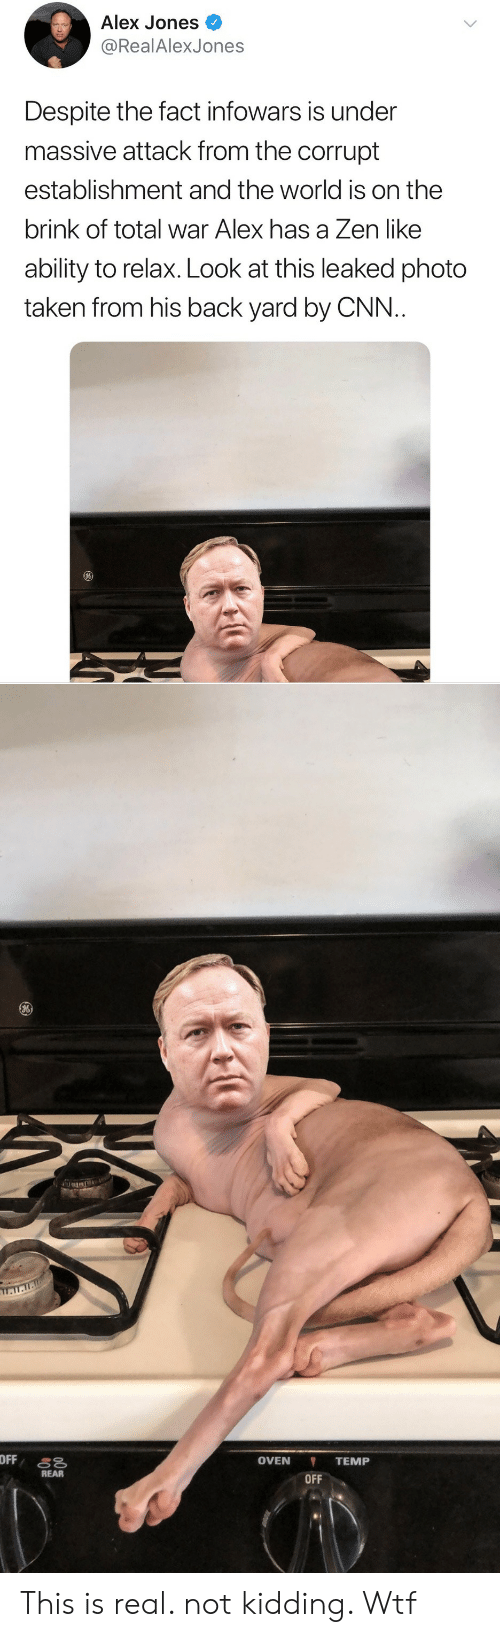 cnn.com, Taken, and Wtf: Alex Jones  @RealAlexJones  Despite the fact infowars is under  massive attack from the corrupt  establishment and the world is on the  brink of total war Alex has a Zen like  ability to relax. Look at this leaked photo  taken from his back yard by CNN.   OVEN TEMP  OFF  REAR This is real. not kidding. Wtf